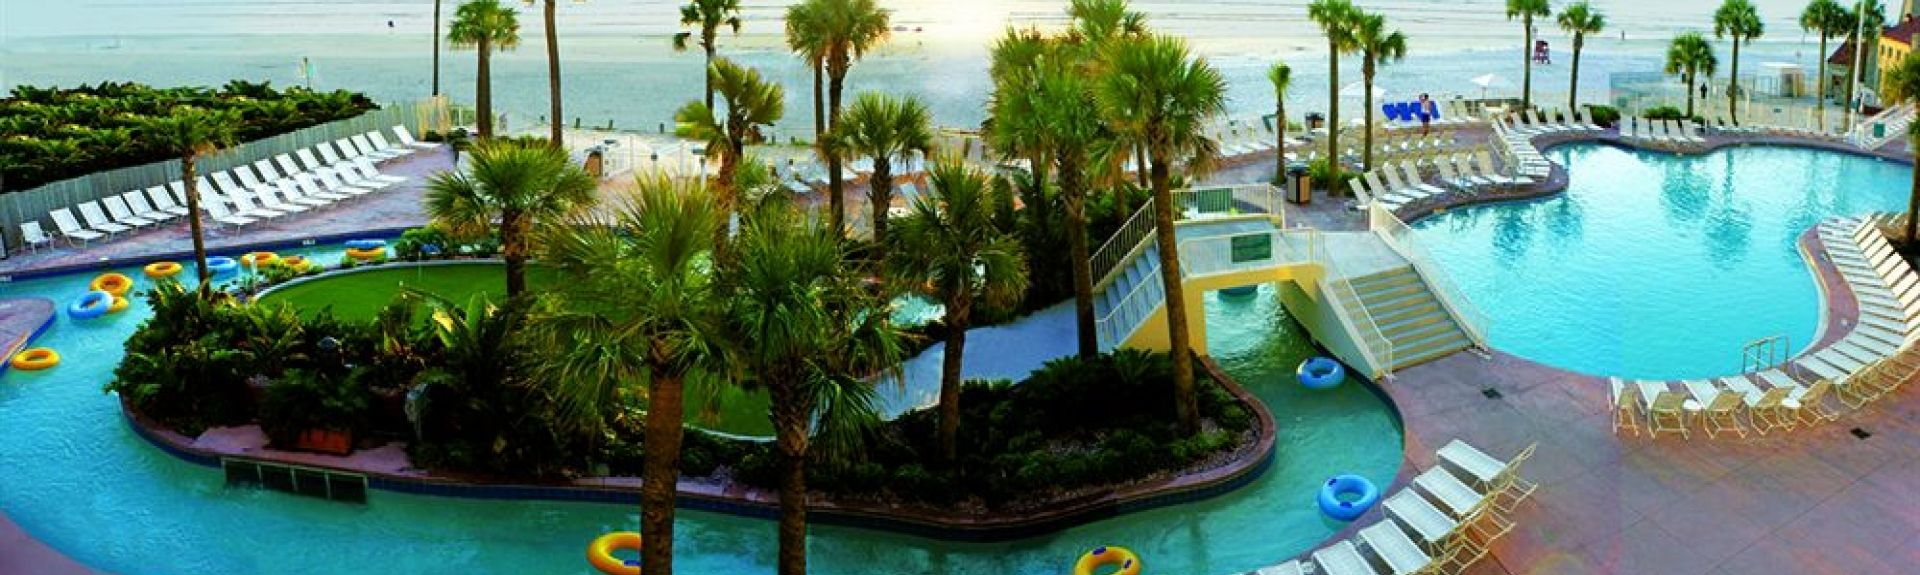 Wyndham Ocean Walk, Daytona Beach, FL, USA